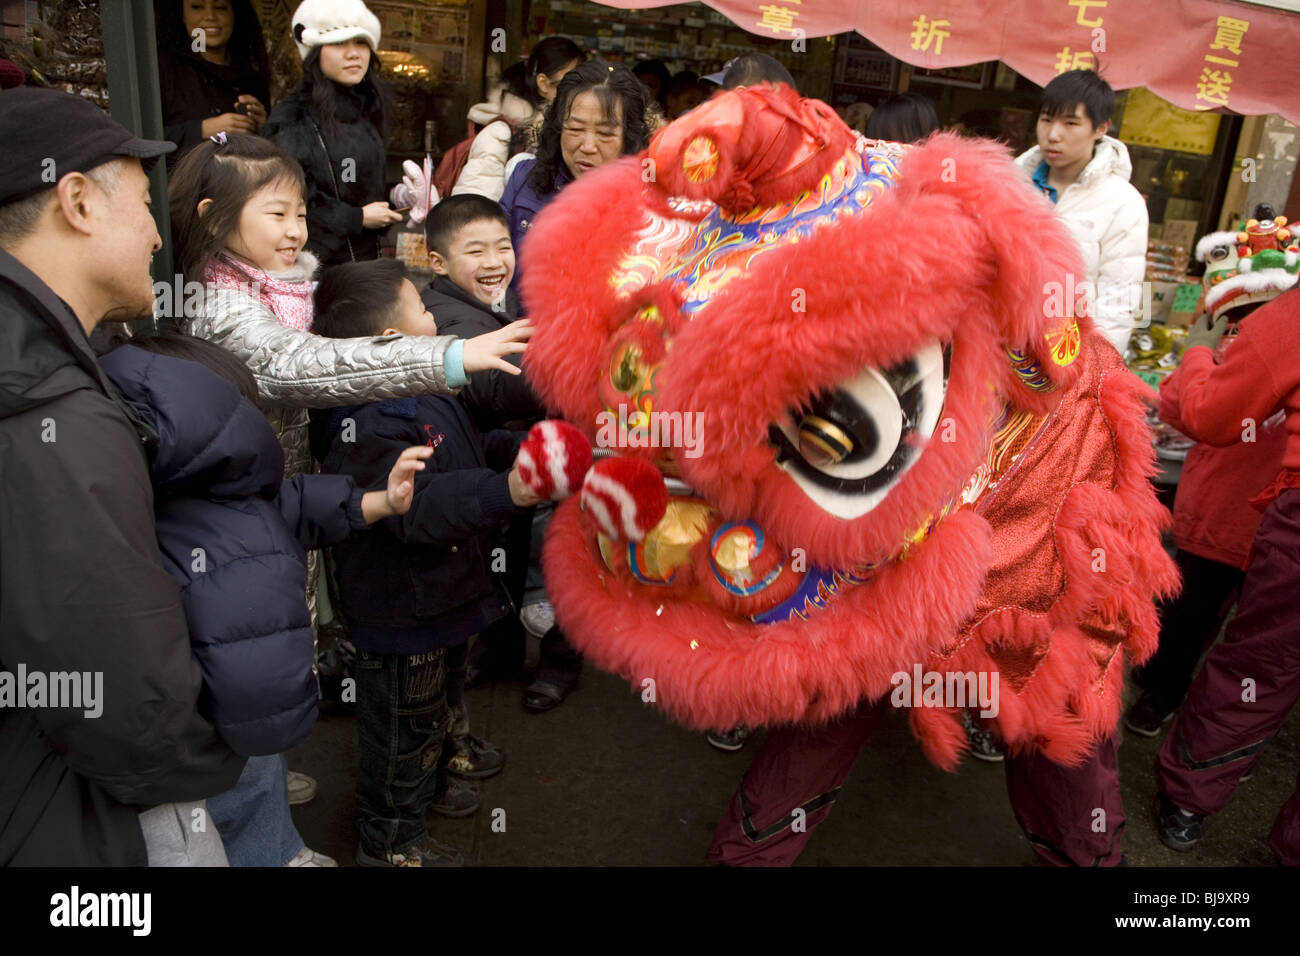 2010: Chinese New Year, Chinatown, NYC, Year of the Tiger. Chinese Lion dancers - Stock Image